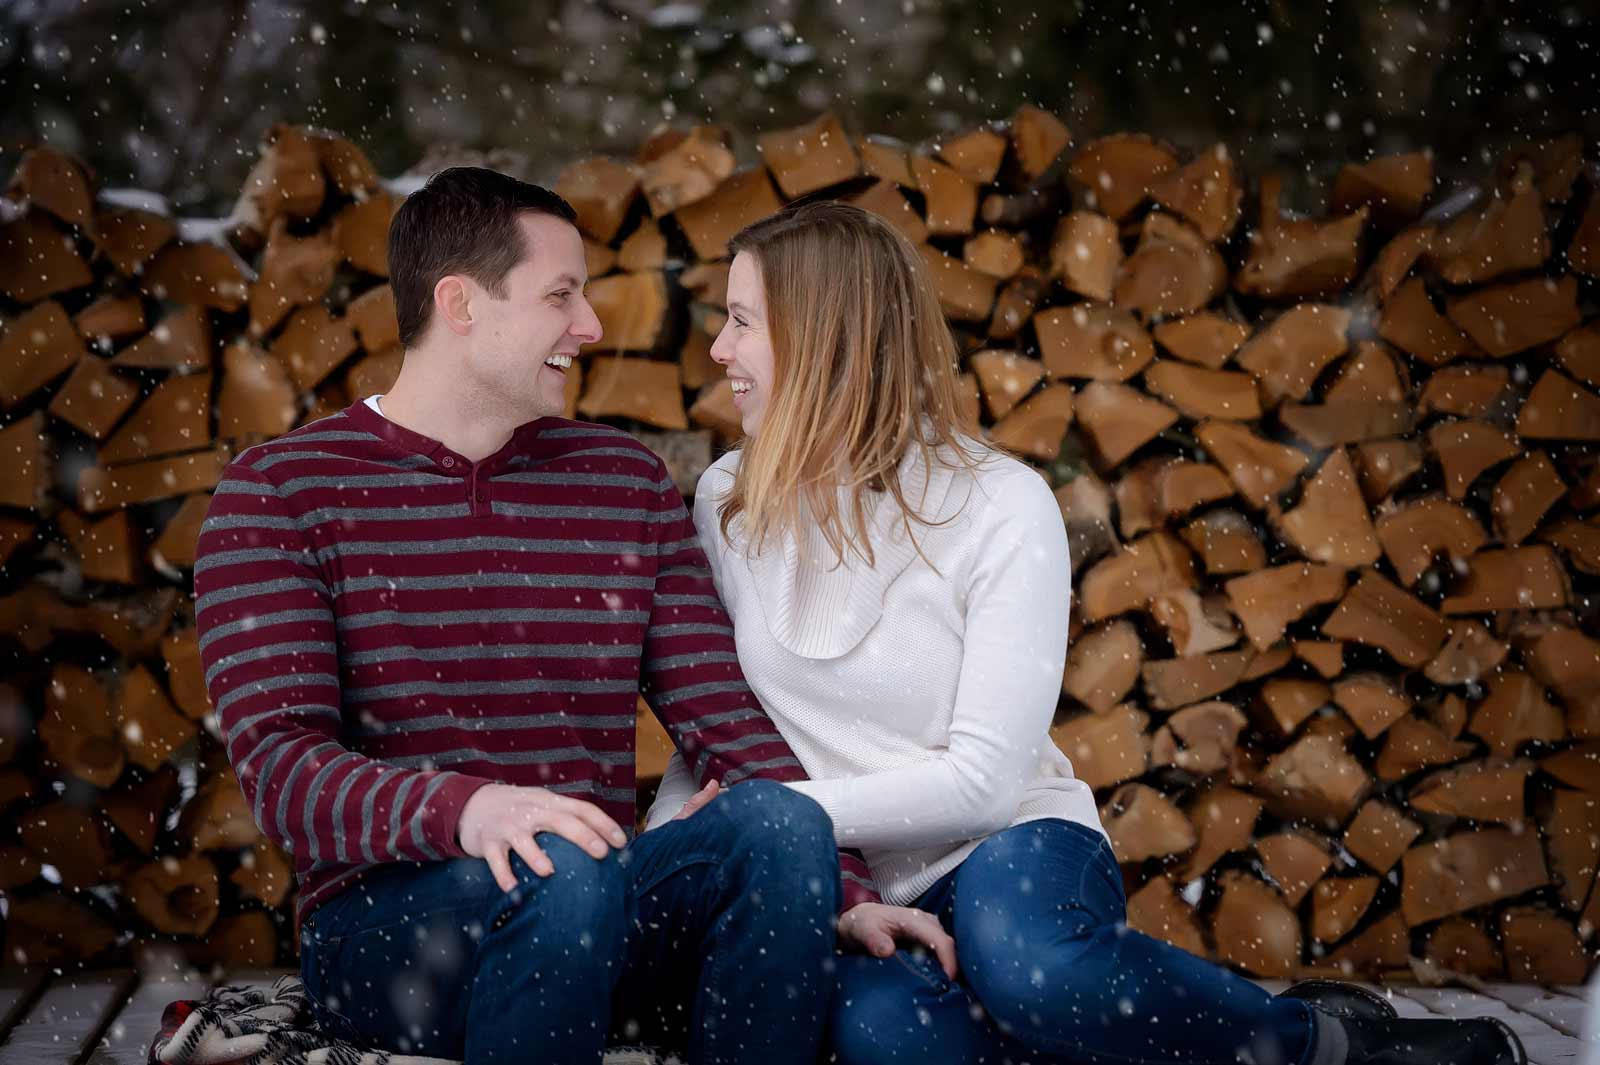 Bridget and Mike's winter engagement session in Manotick, Ottawa, Ontario, cuddling in the snow in front of a wood pile while snowing